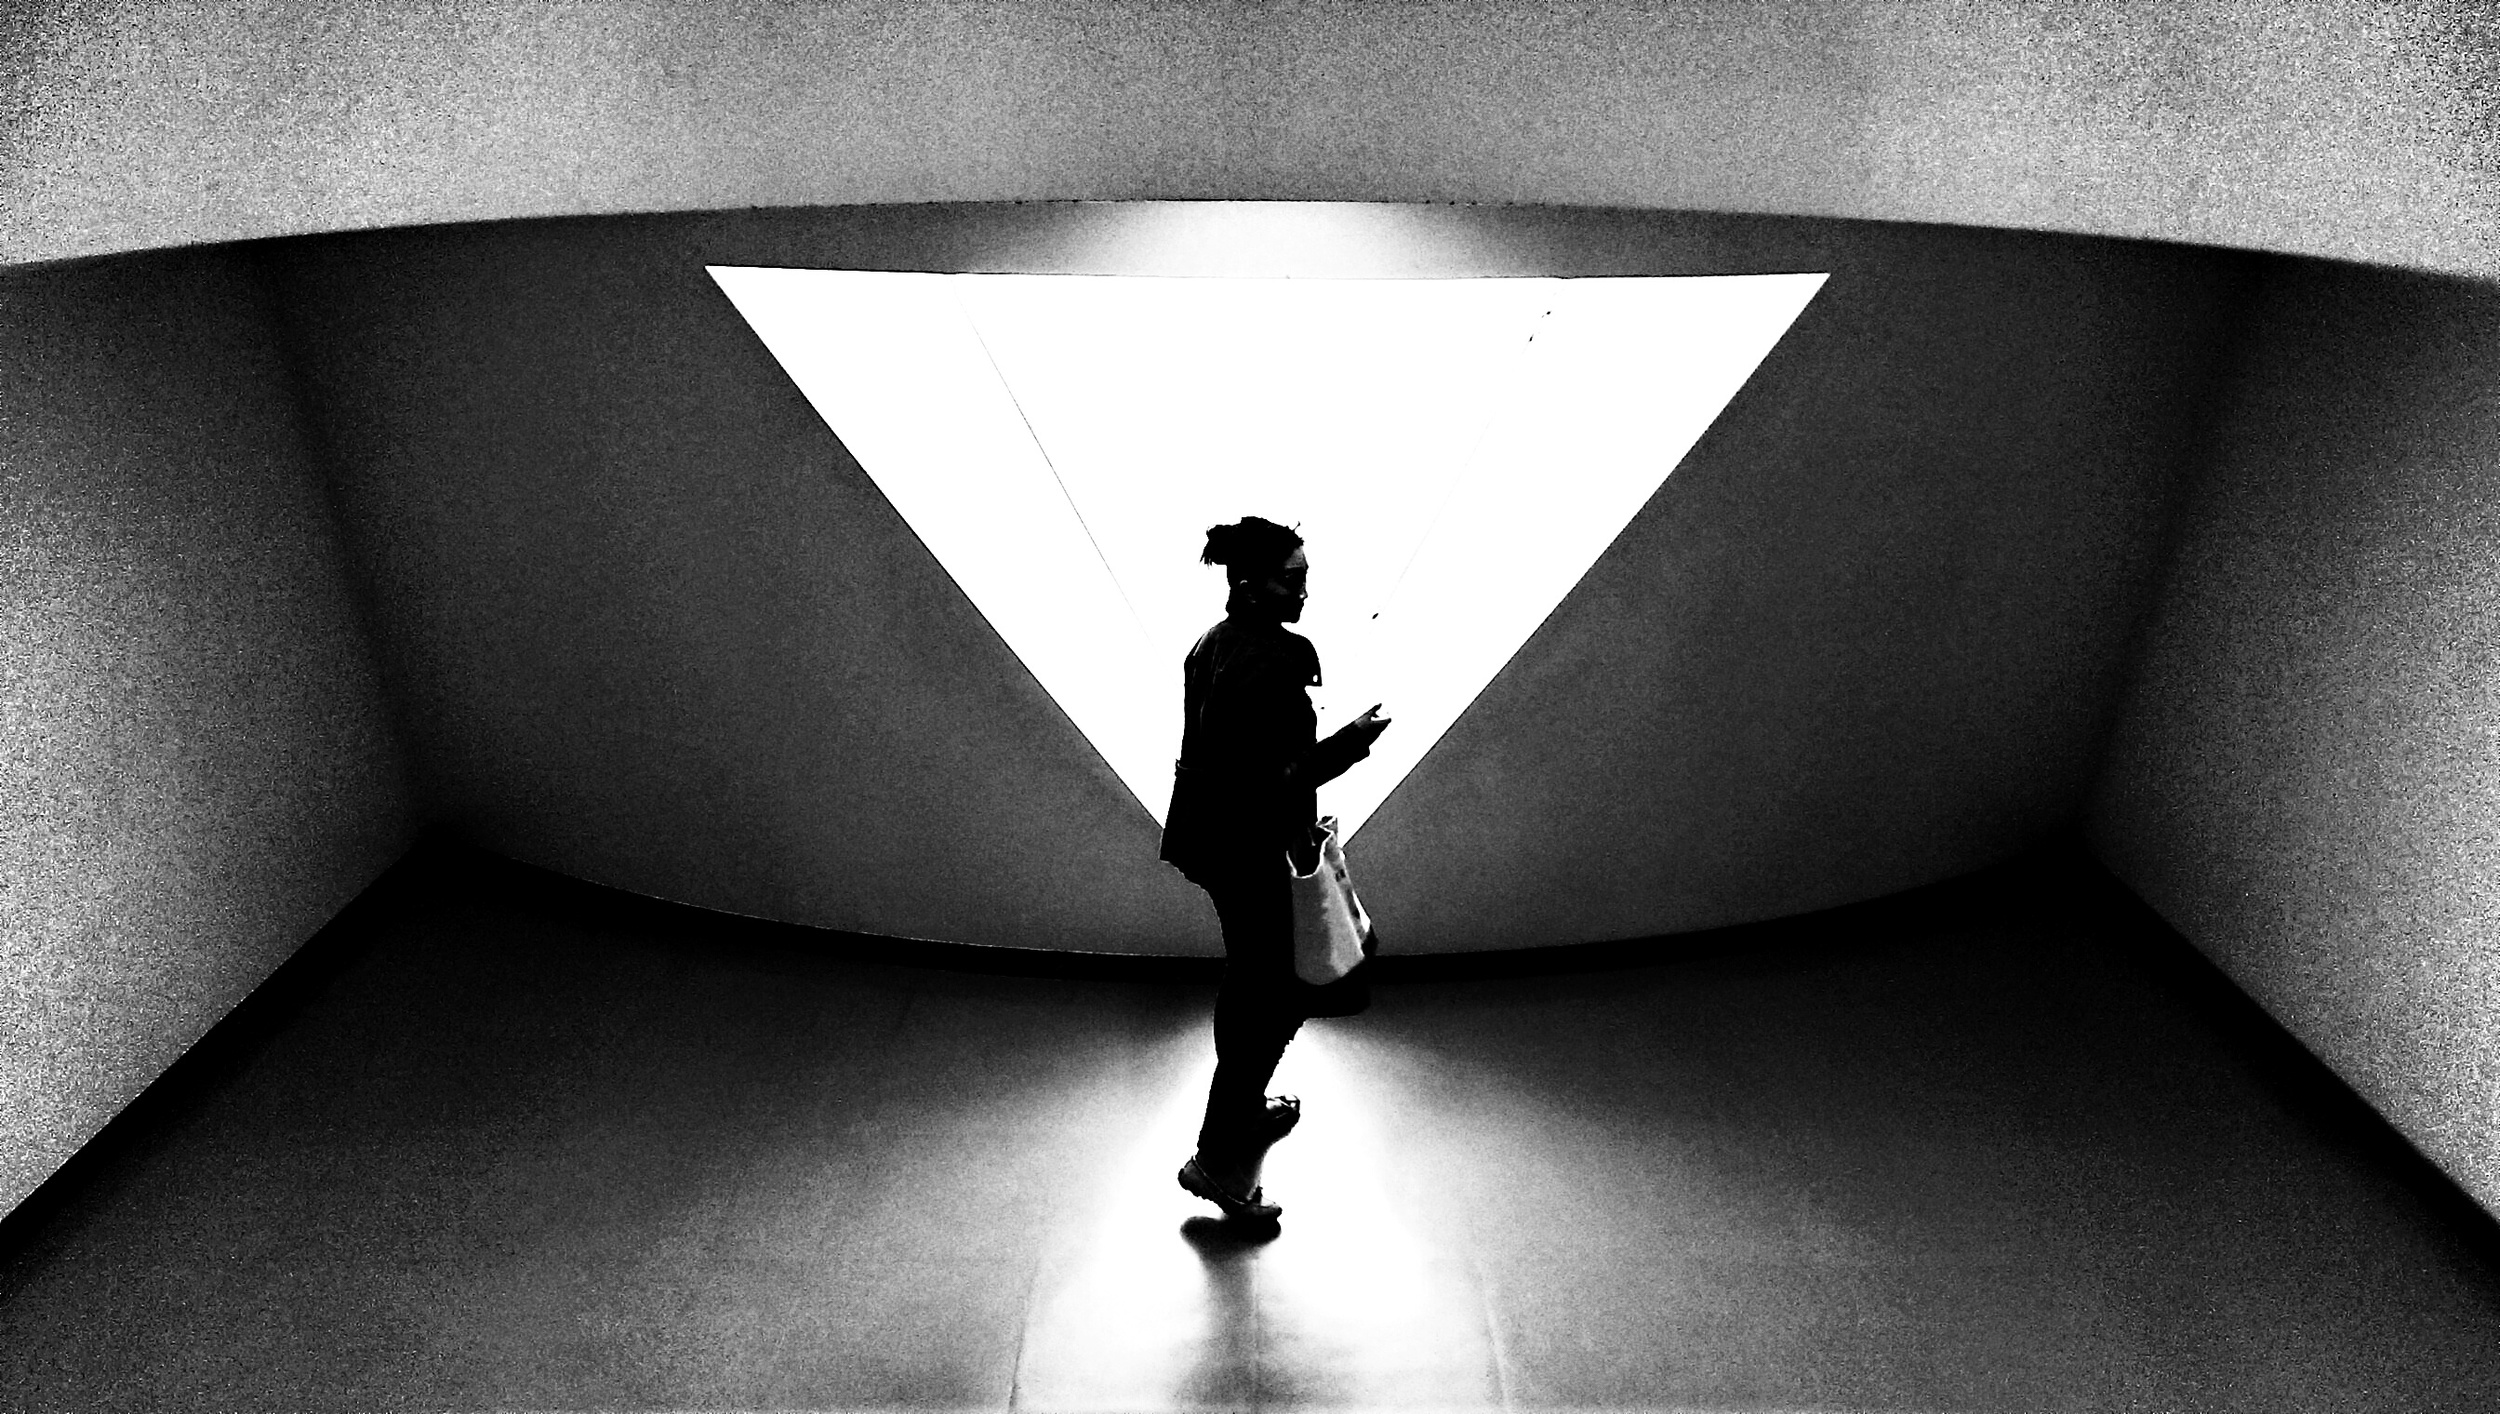 At the Museum Of Contemporary Art in Hiroshima.